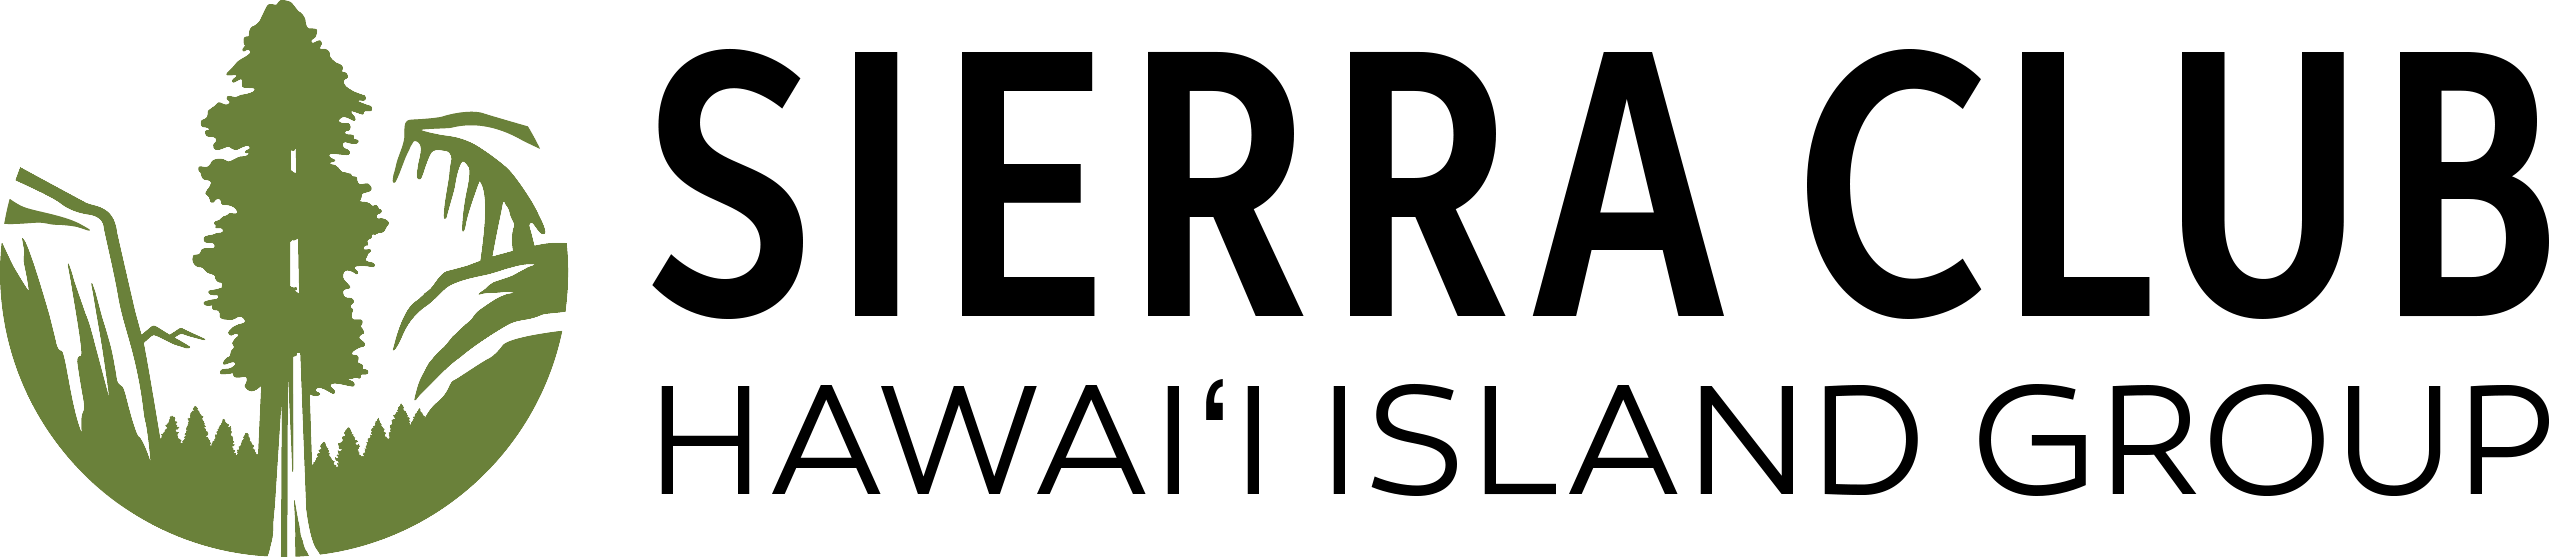 Sierra Club Hawaiʻi Island Group